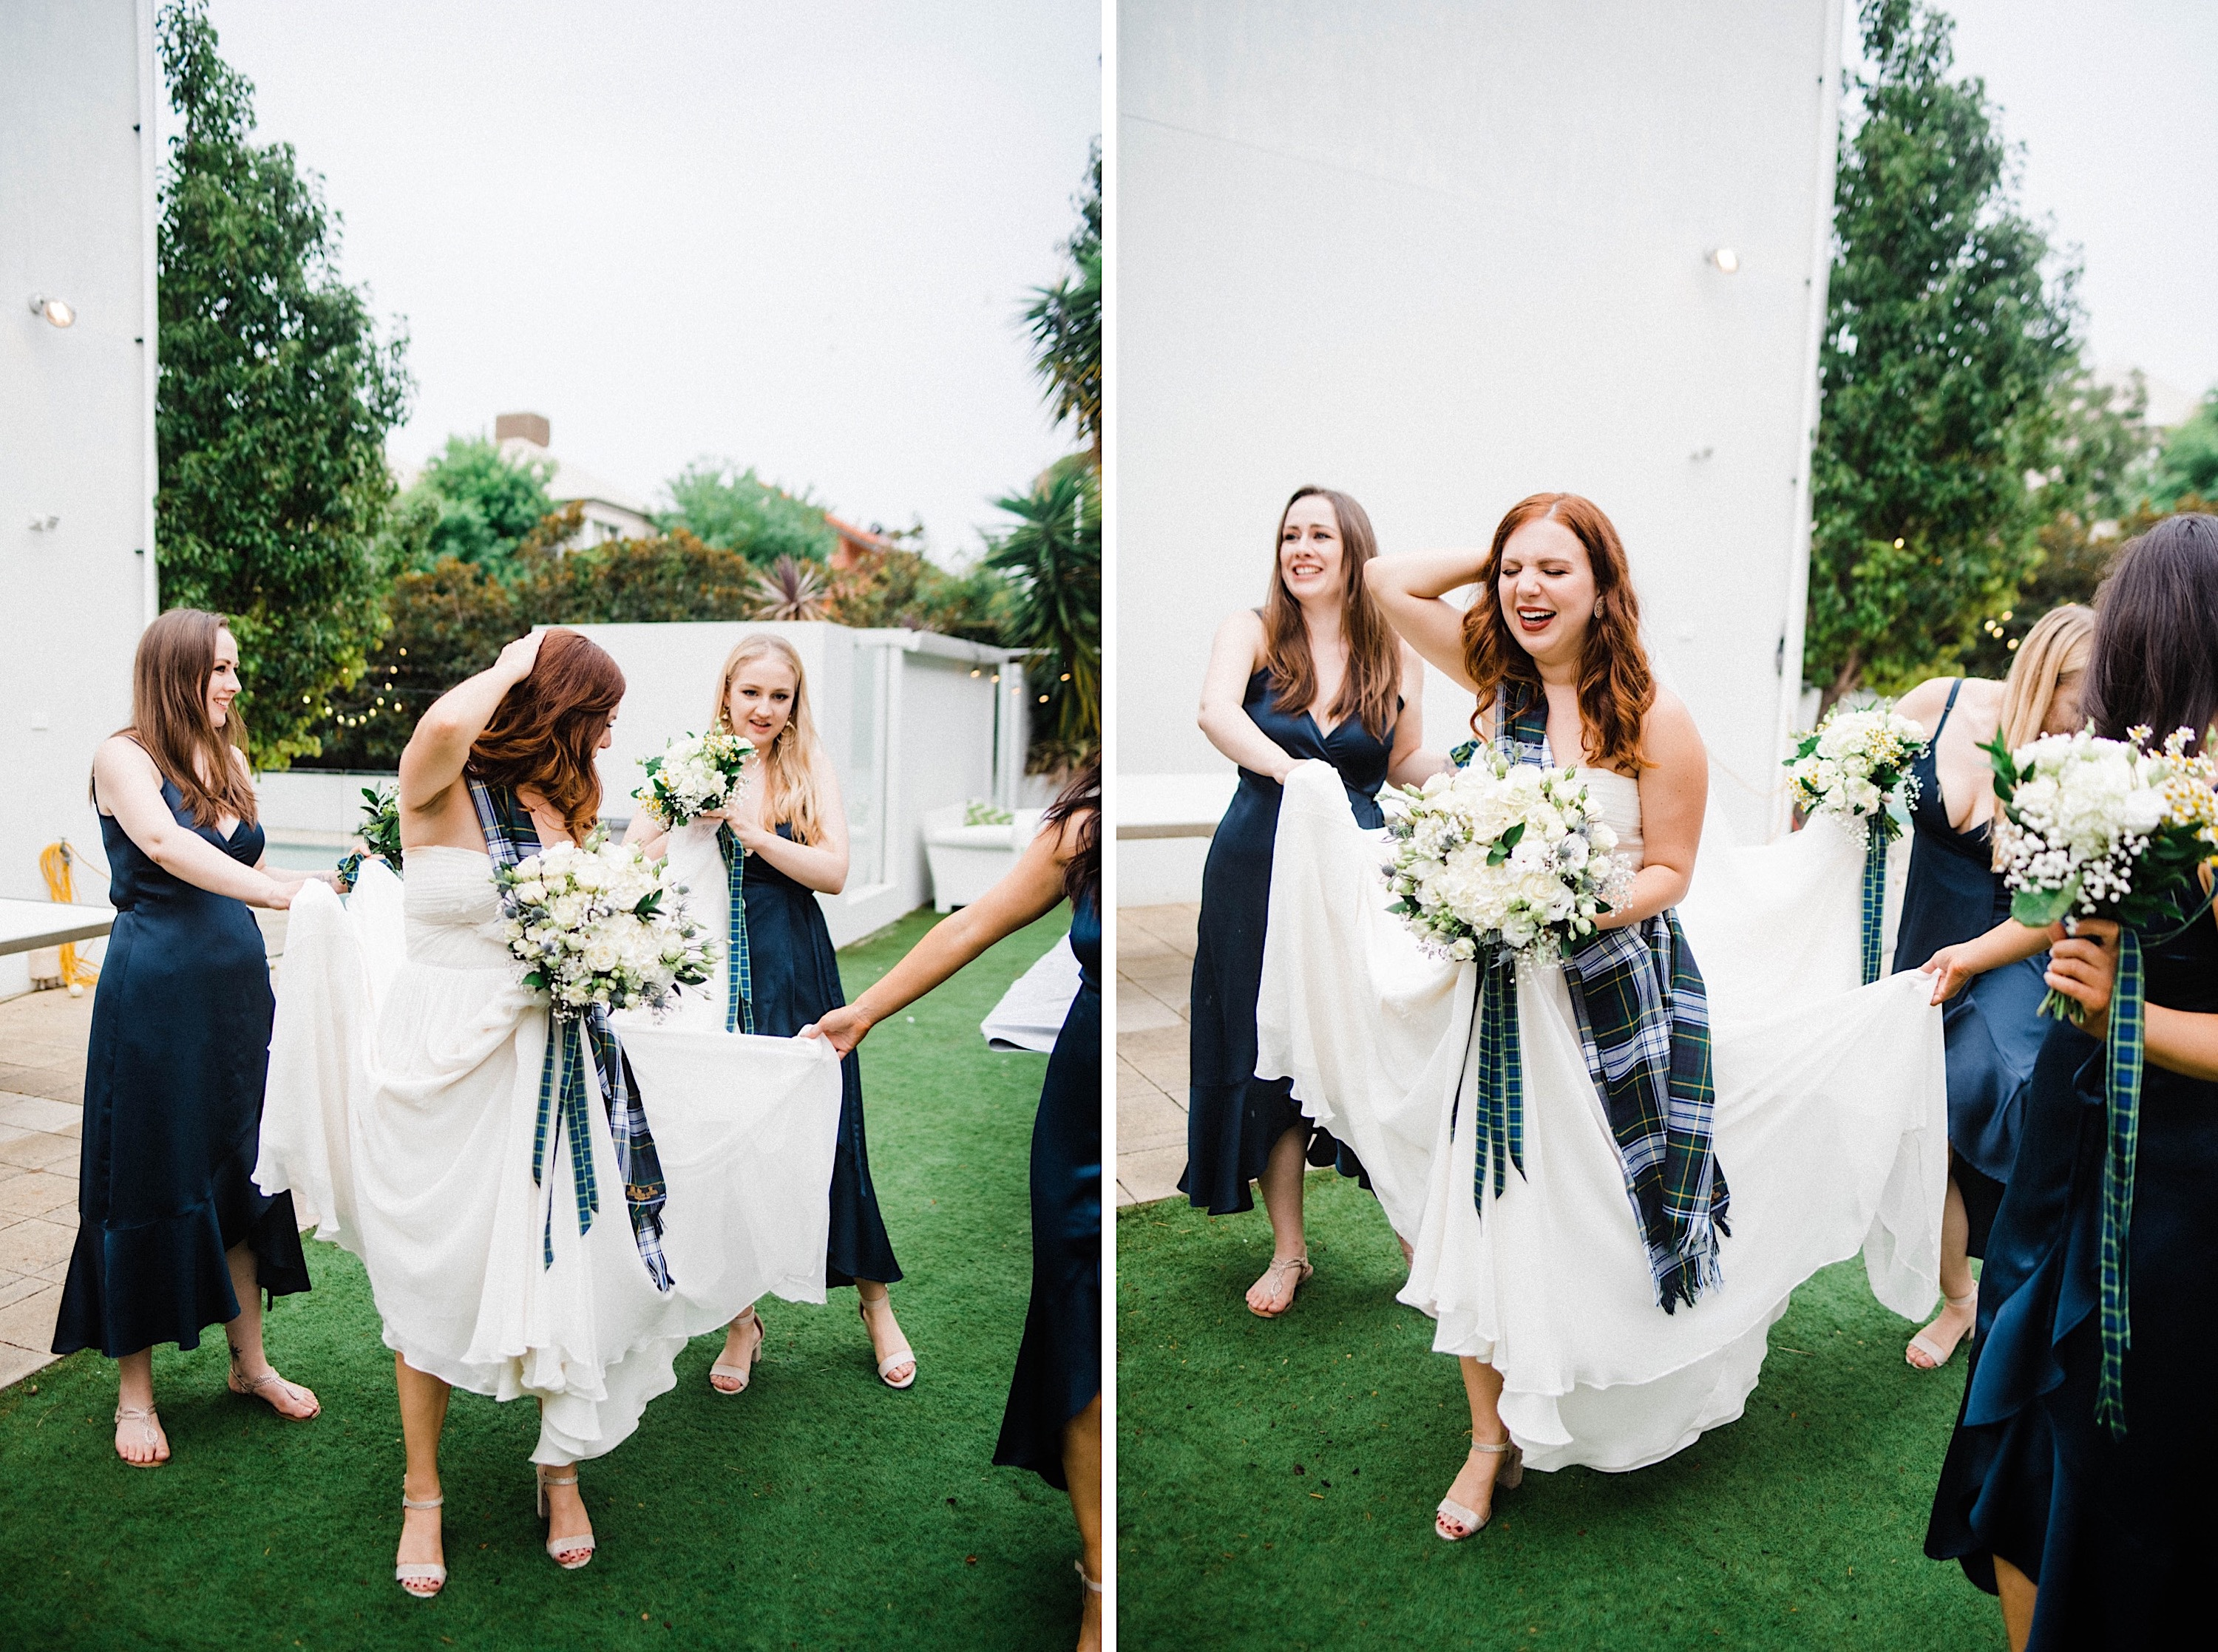 Two portrait photos of the bride laughing and walking at her Sustainable Backyard Wedding.